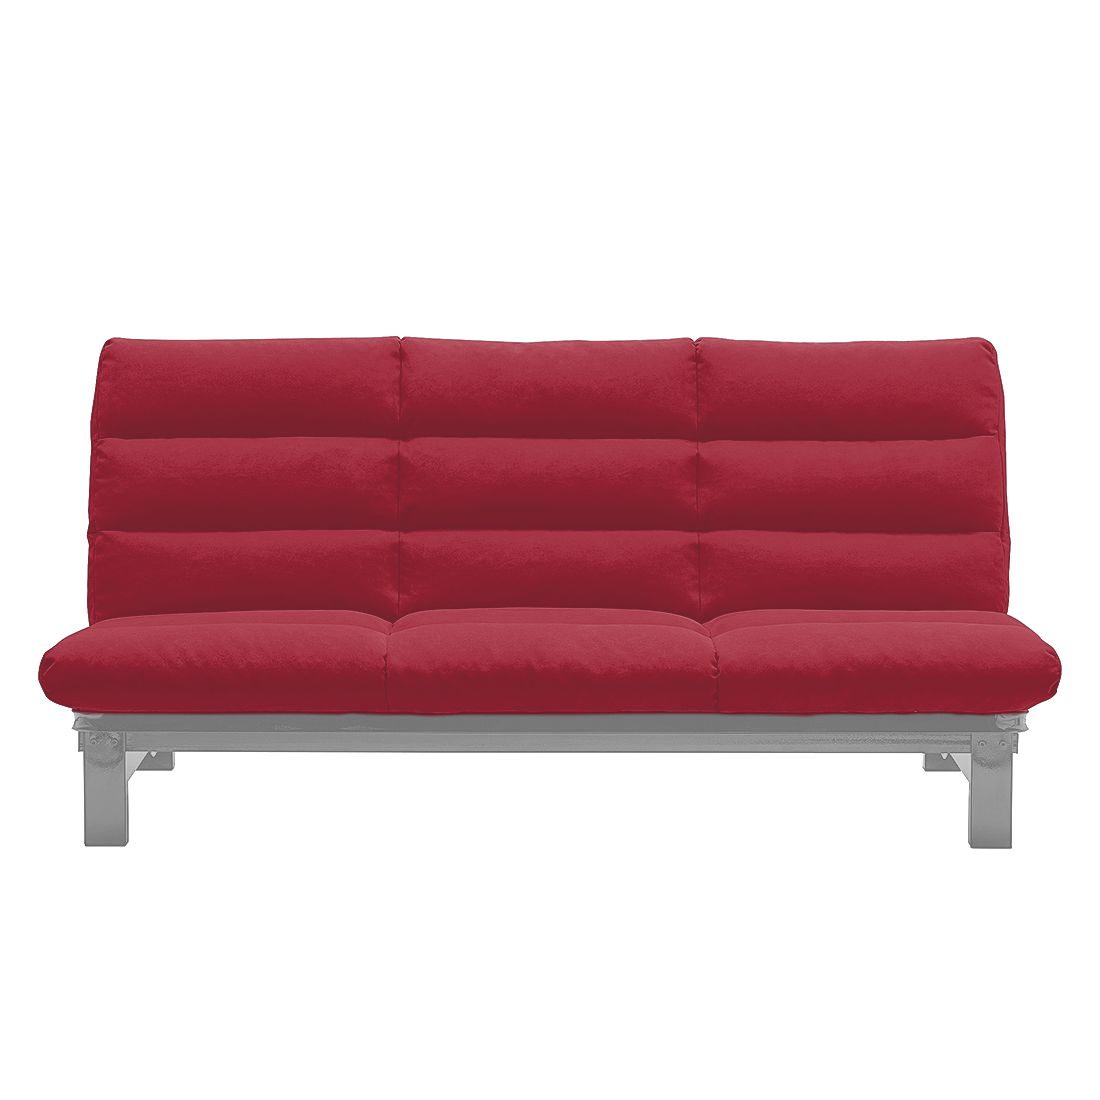 schlafsofa klack microfaser rot aluminium studio monroe g nstig kaufen. Black Bedroom Furniture Sets. Home Design Ideas